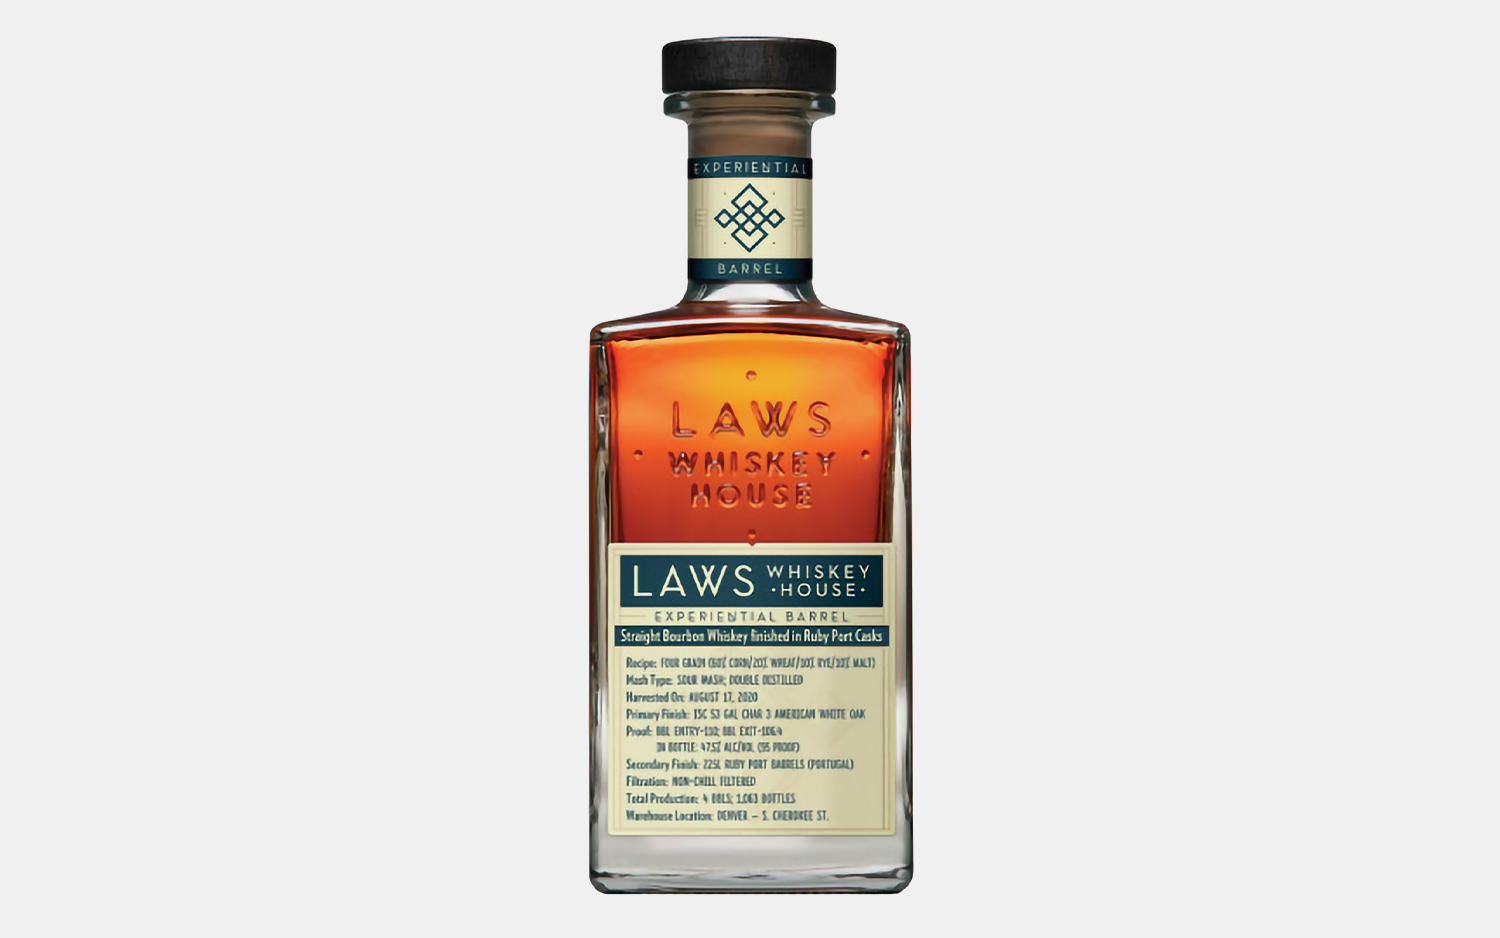 Laws Four Grain Ruby Port Cask Finish Bourbon